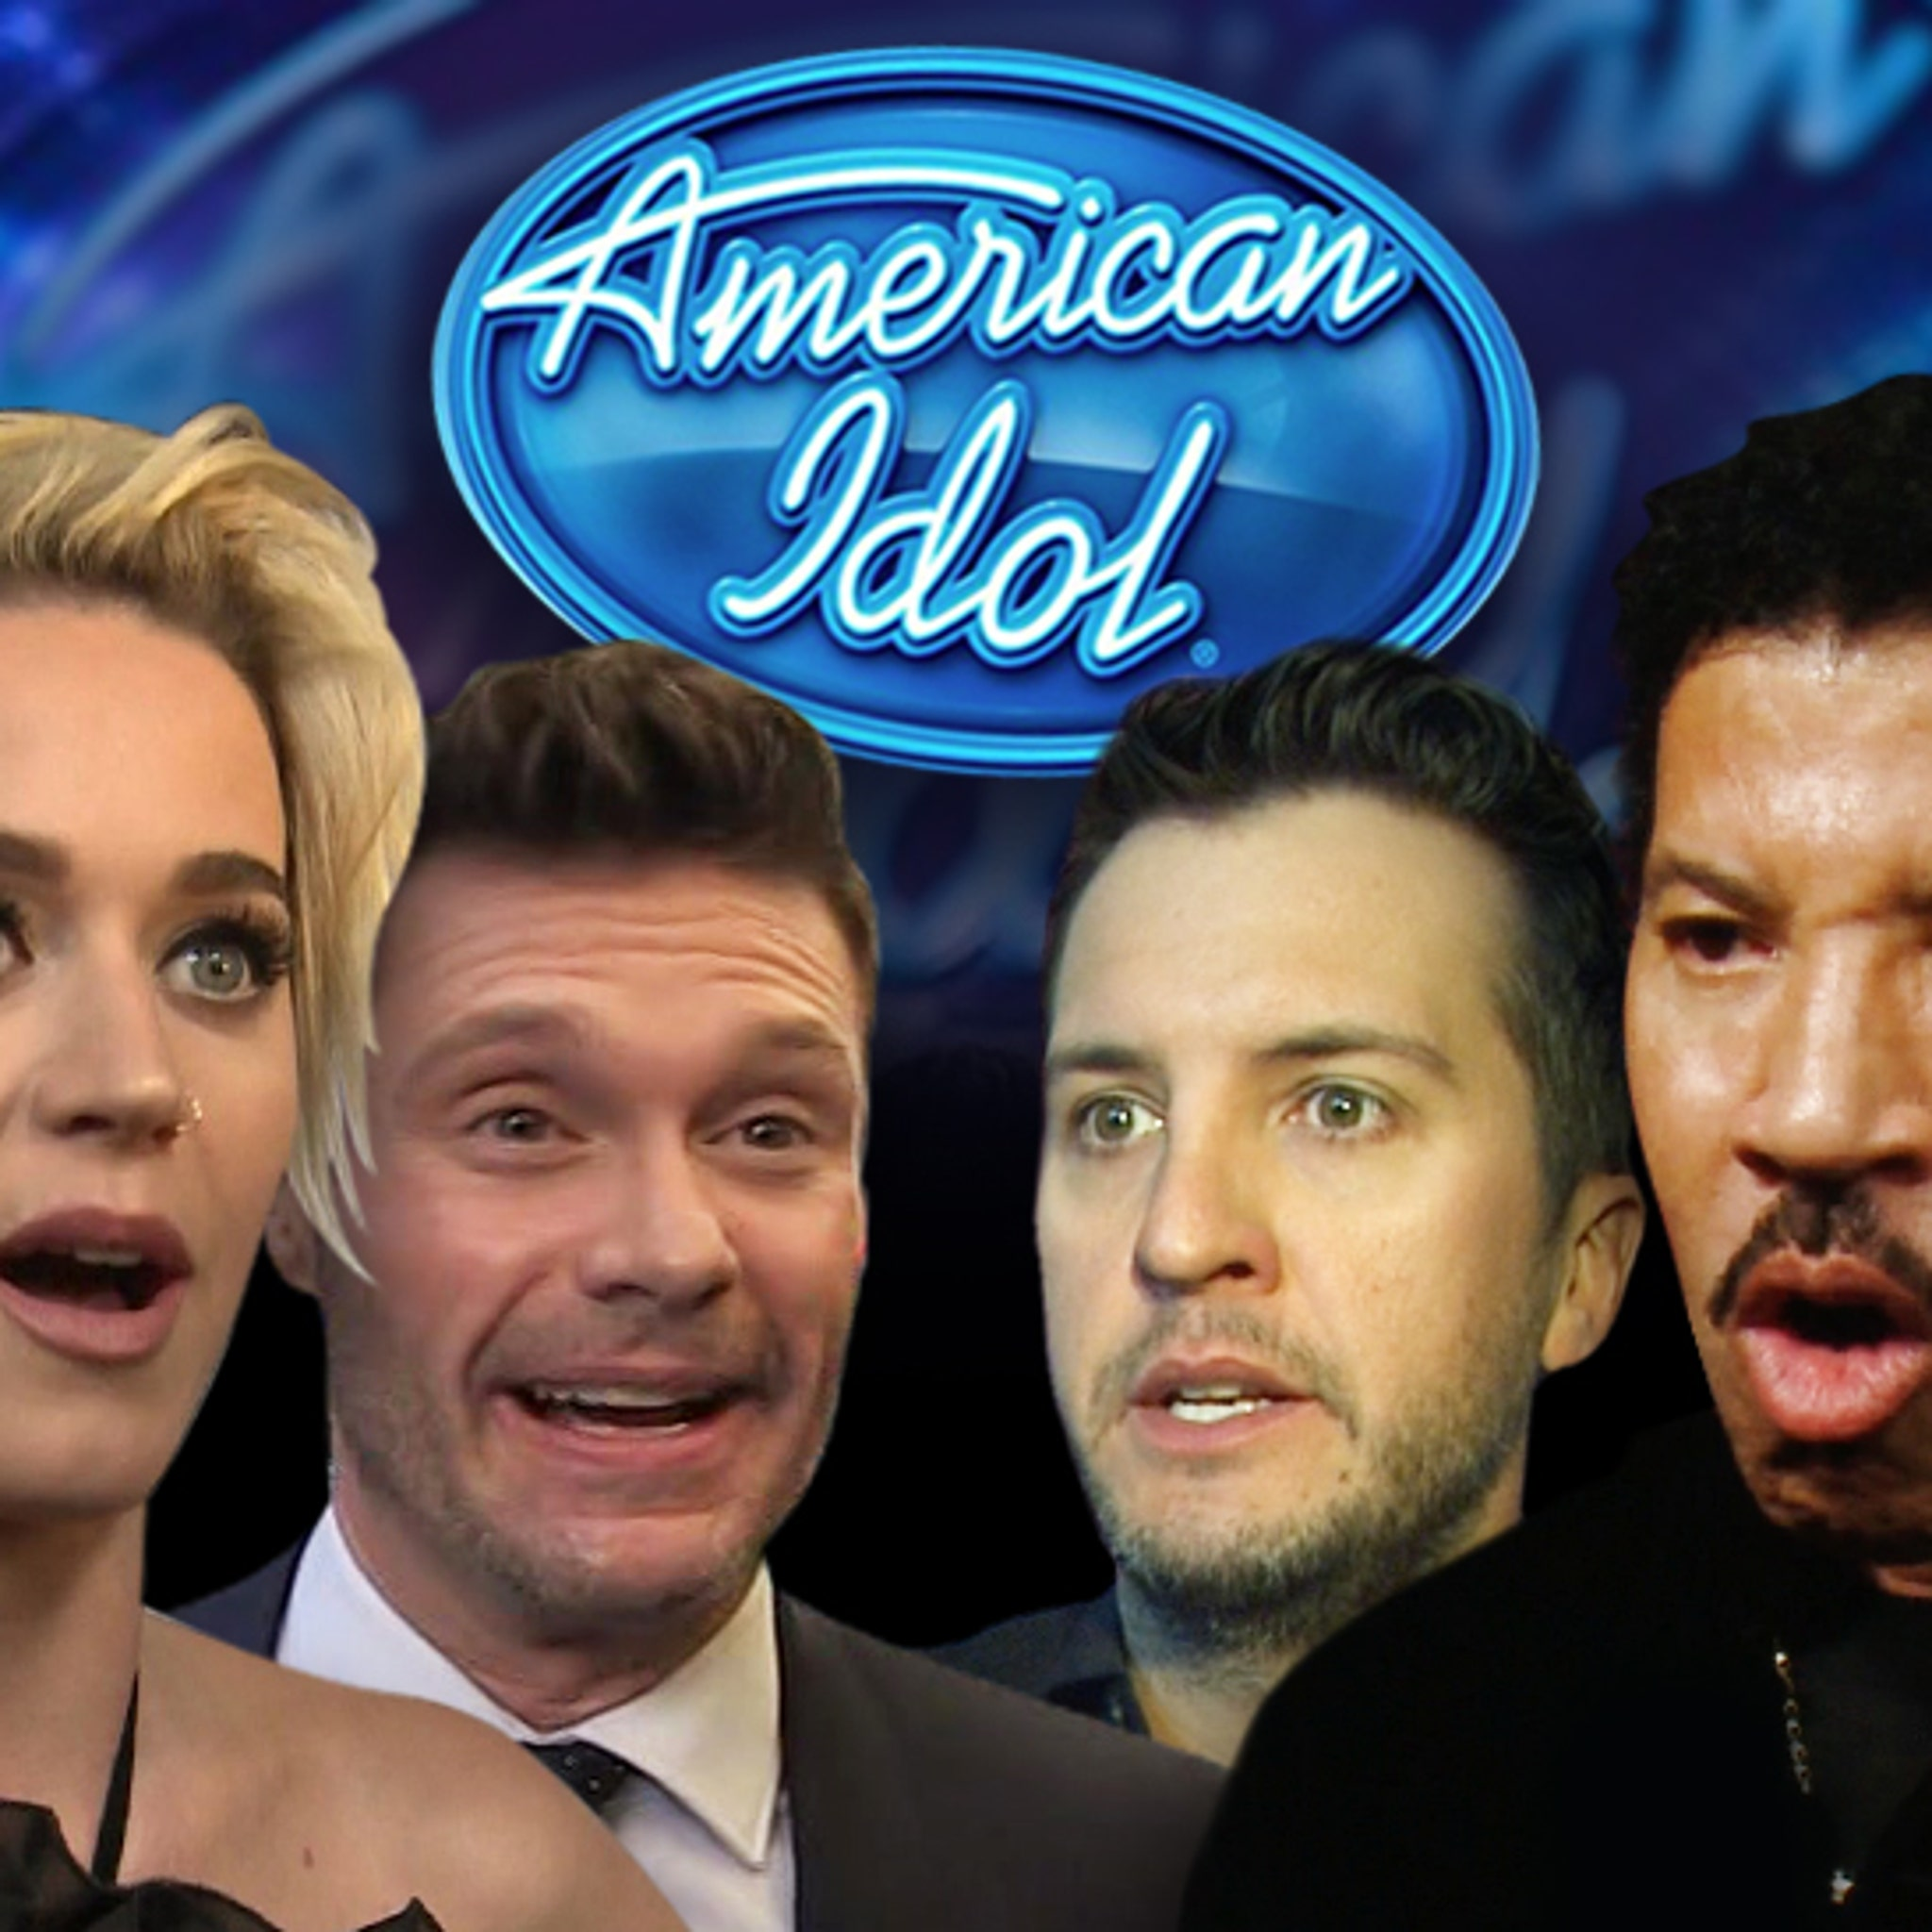 American Idol' Contestants Hooking Up Like Crazy for New Season